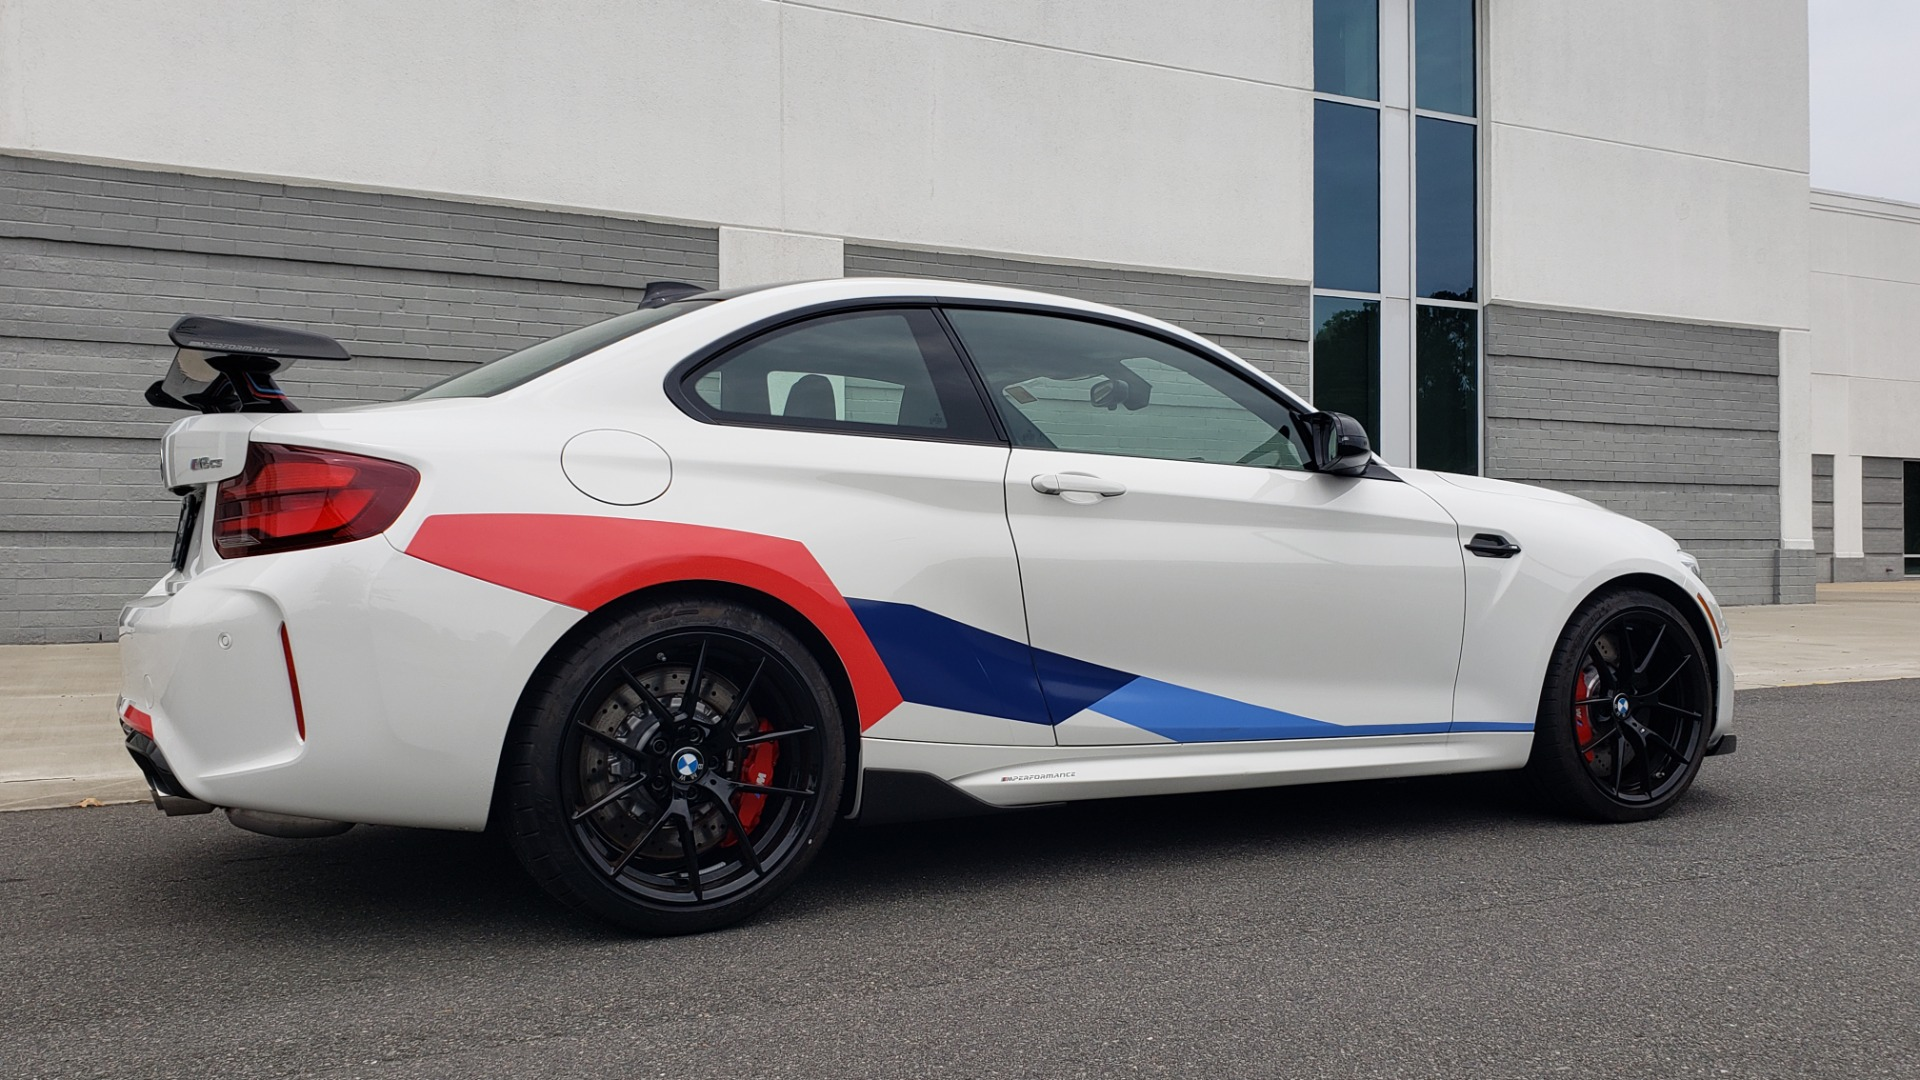 Used 2020 BMW M2 CS COMPETITION 405HP / COUPE / MANUAL / NAV / H/K SOUND / REARVIEW for sale $105,995 at Formula Imports in Charlotte NC 28227 8